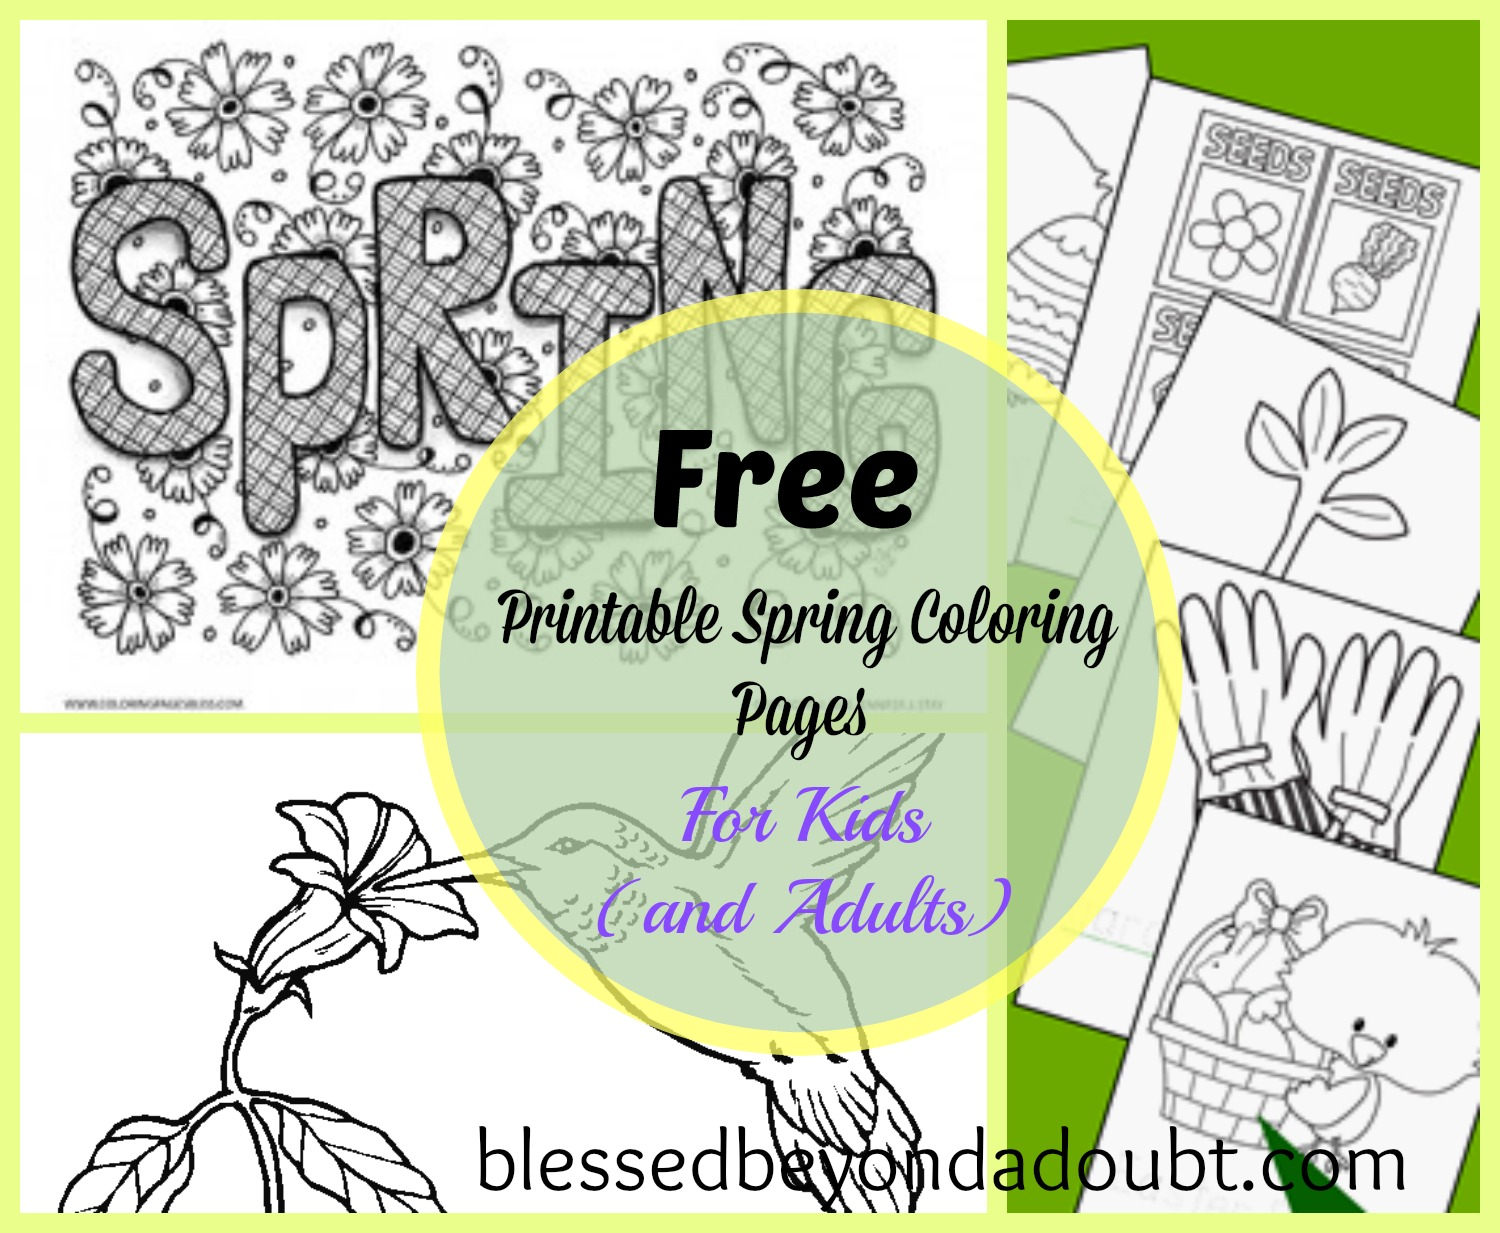 free printable spring coloring sheets for kids - Spring Coloring Pages For Kids Printable